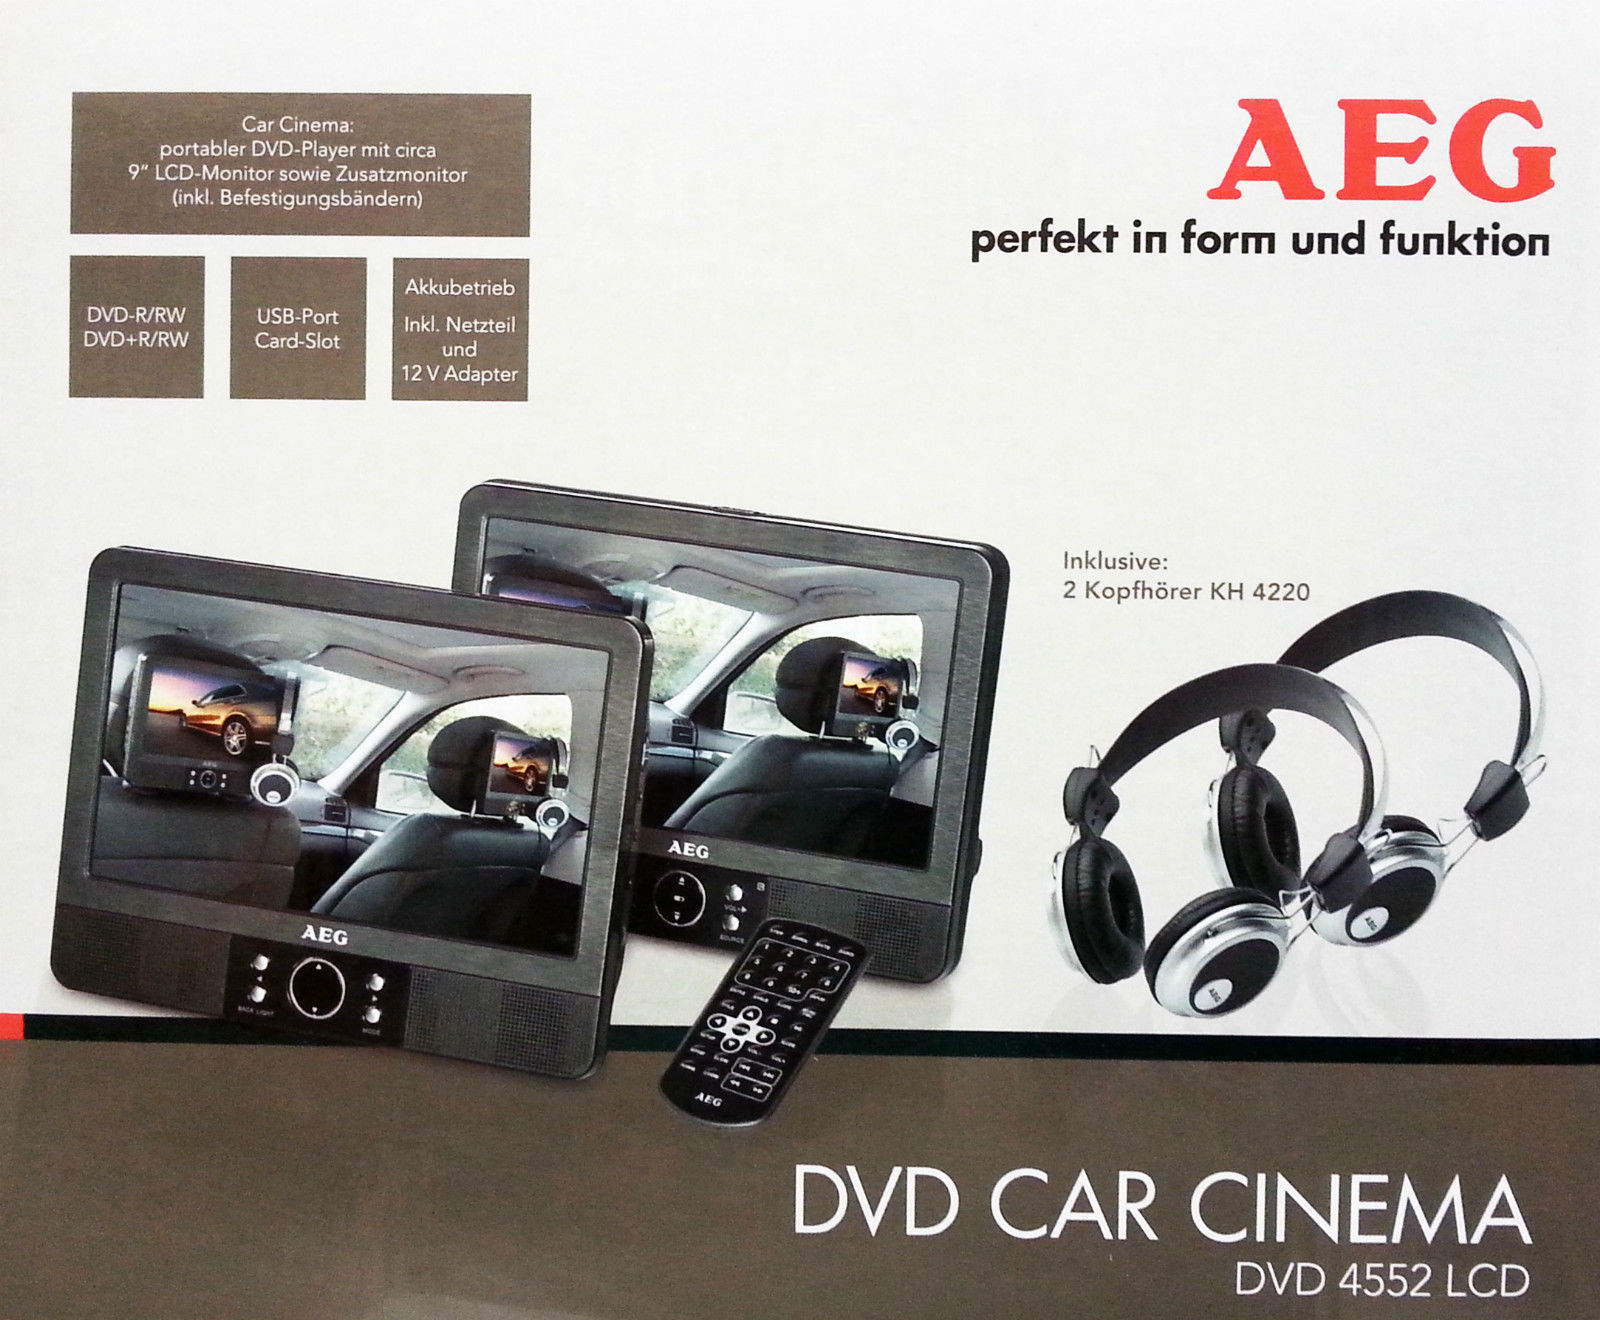 aeg dvd 4552 9 twin duo monitor dvd player car cinema mit. Black Bedroom Furniture Sets. Home Design Ideas